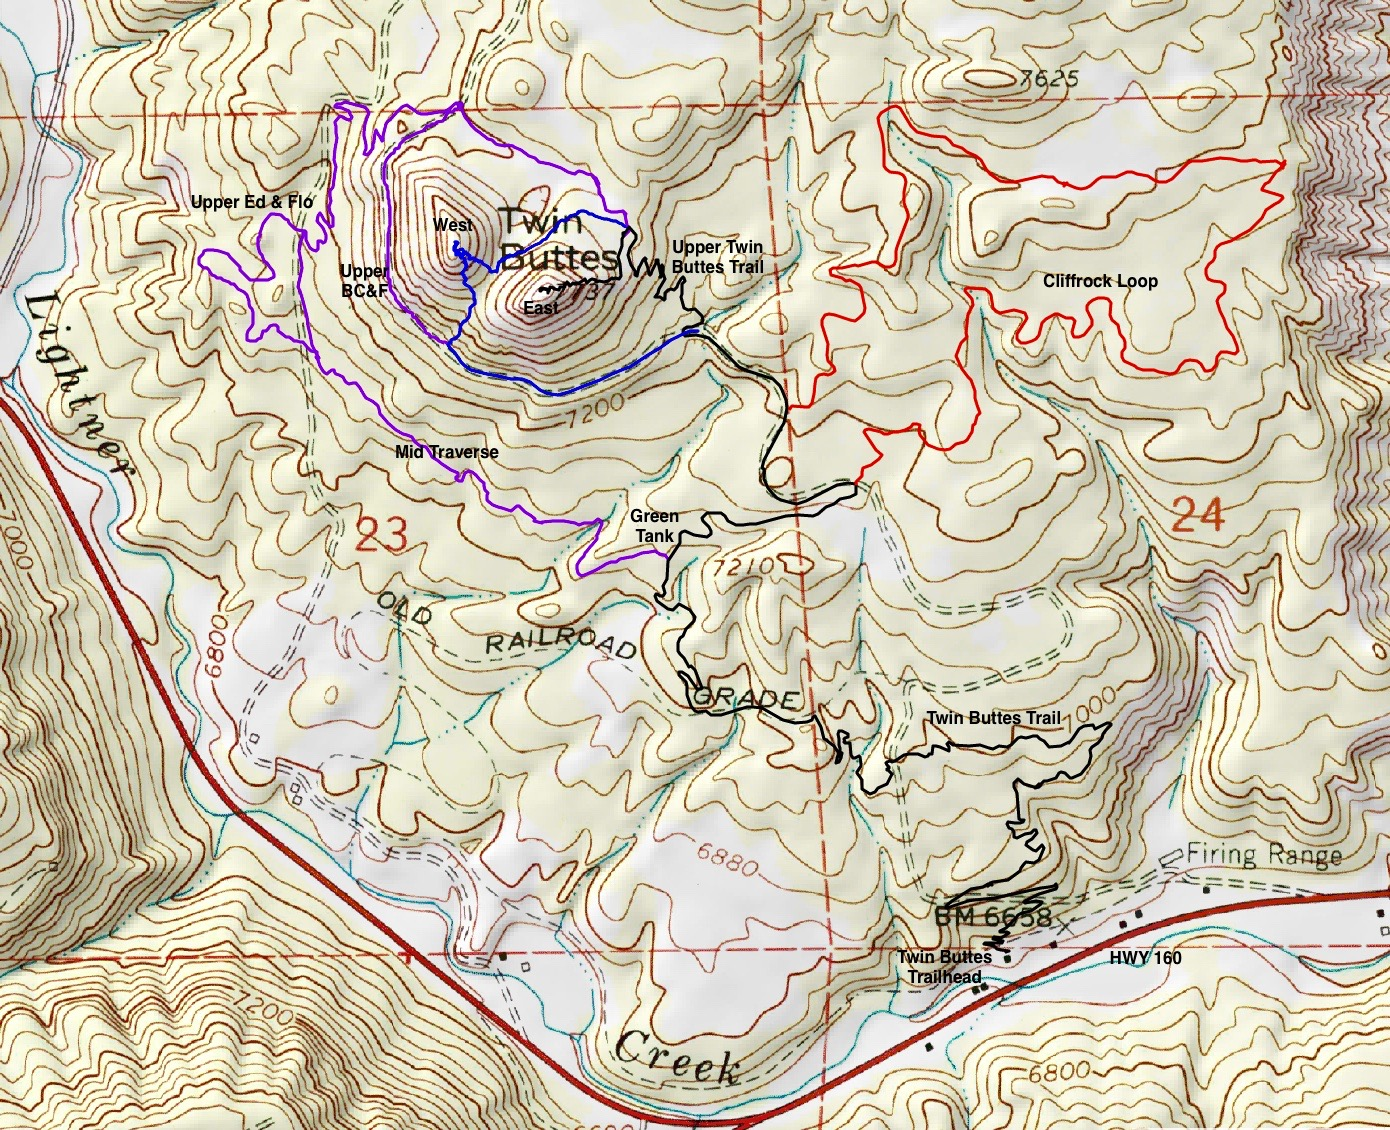 the blue line route tackles twin buttes west for those who prefer to stay on trails the cliffrock loop is depicted in red and the west side trails are